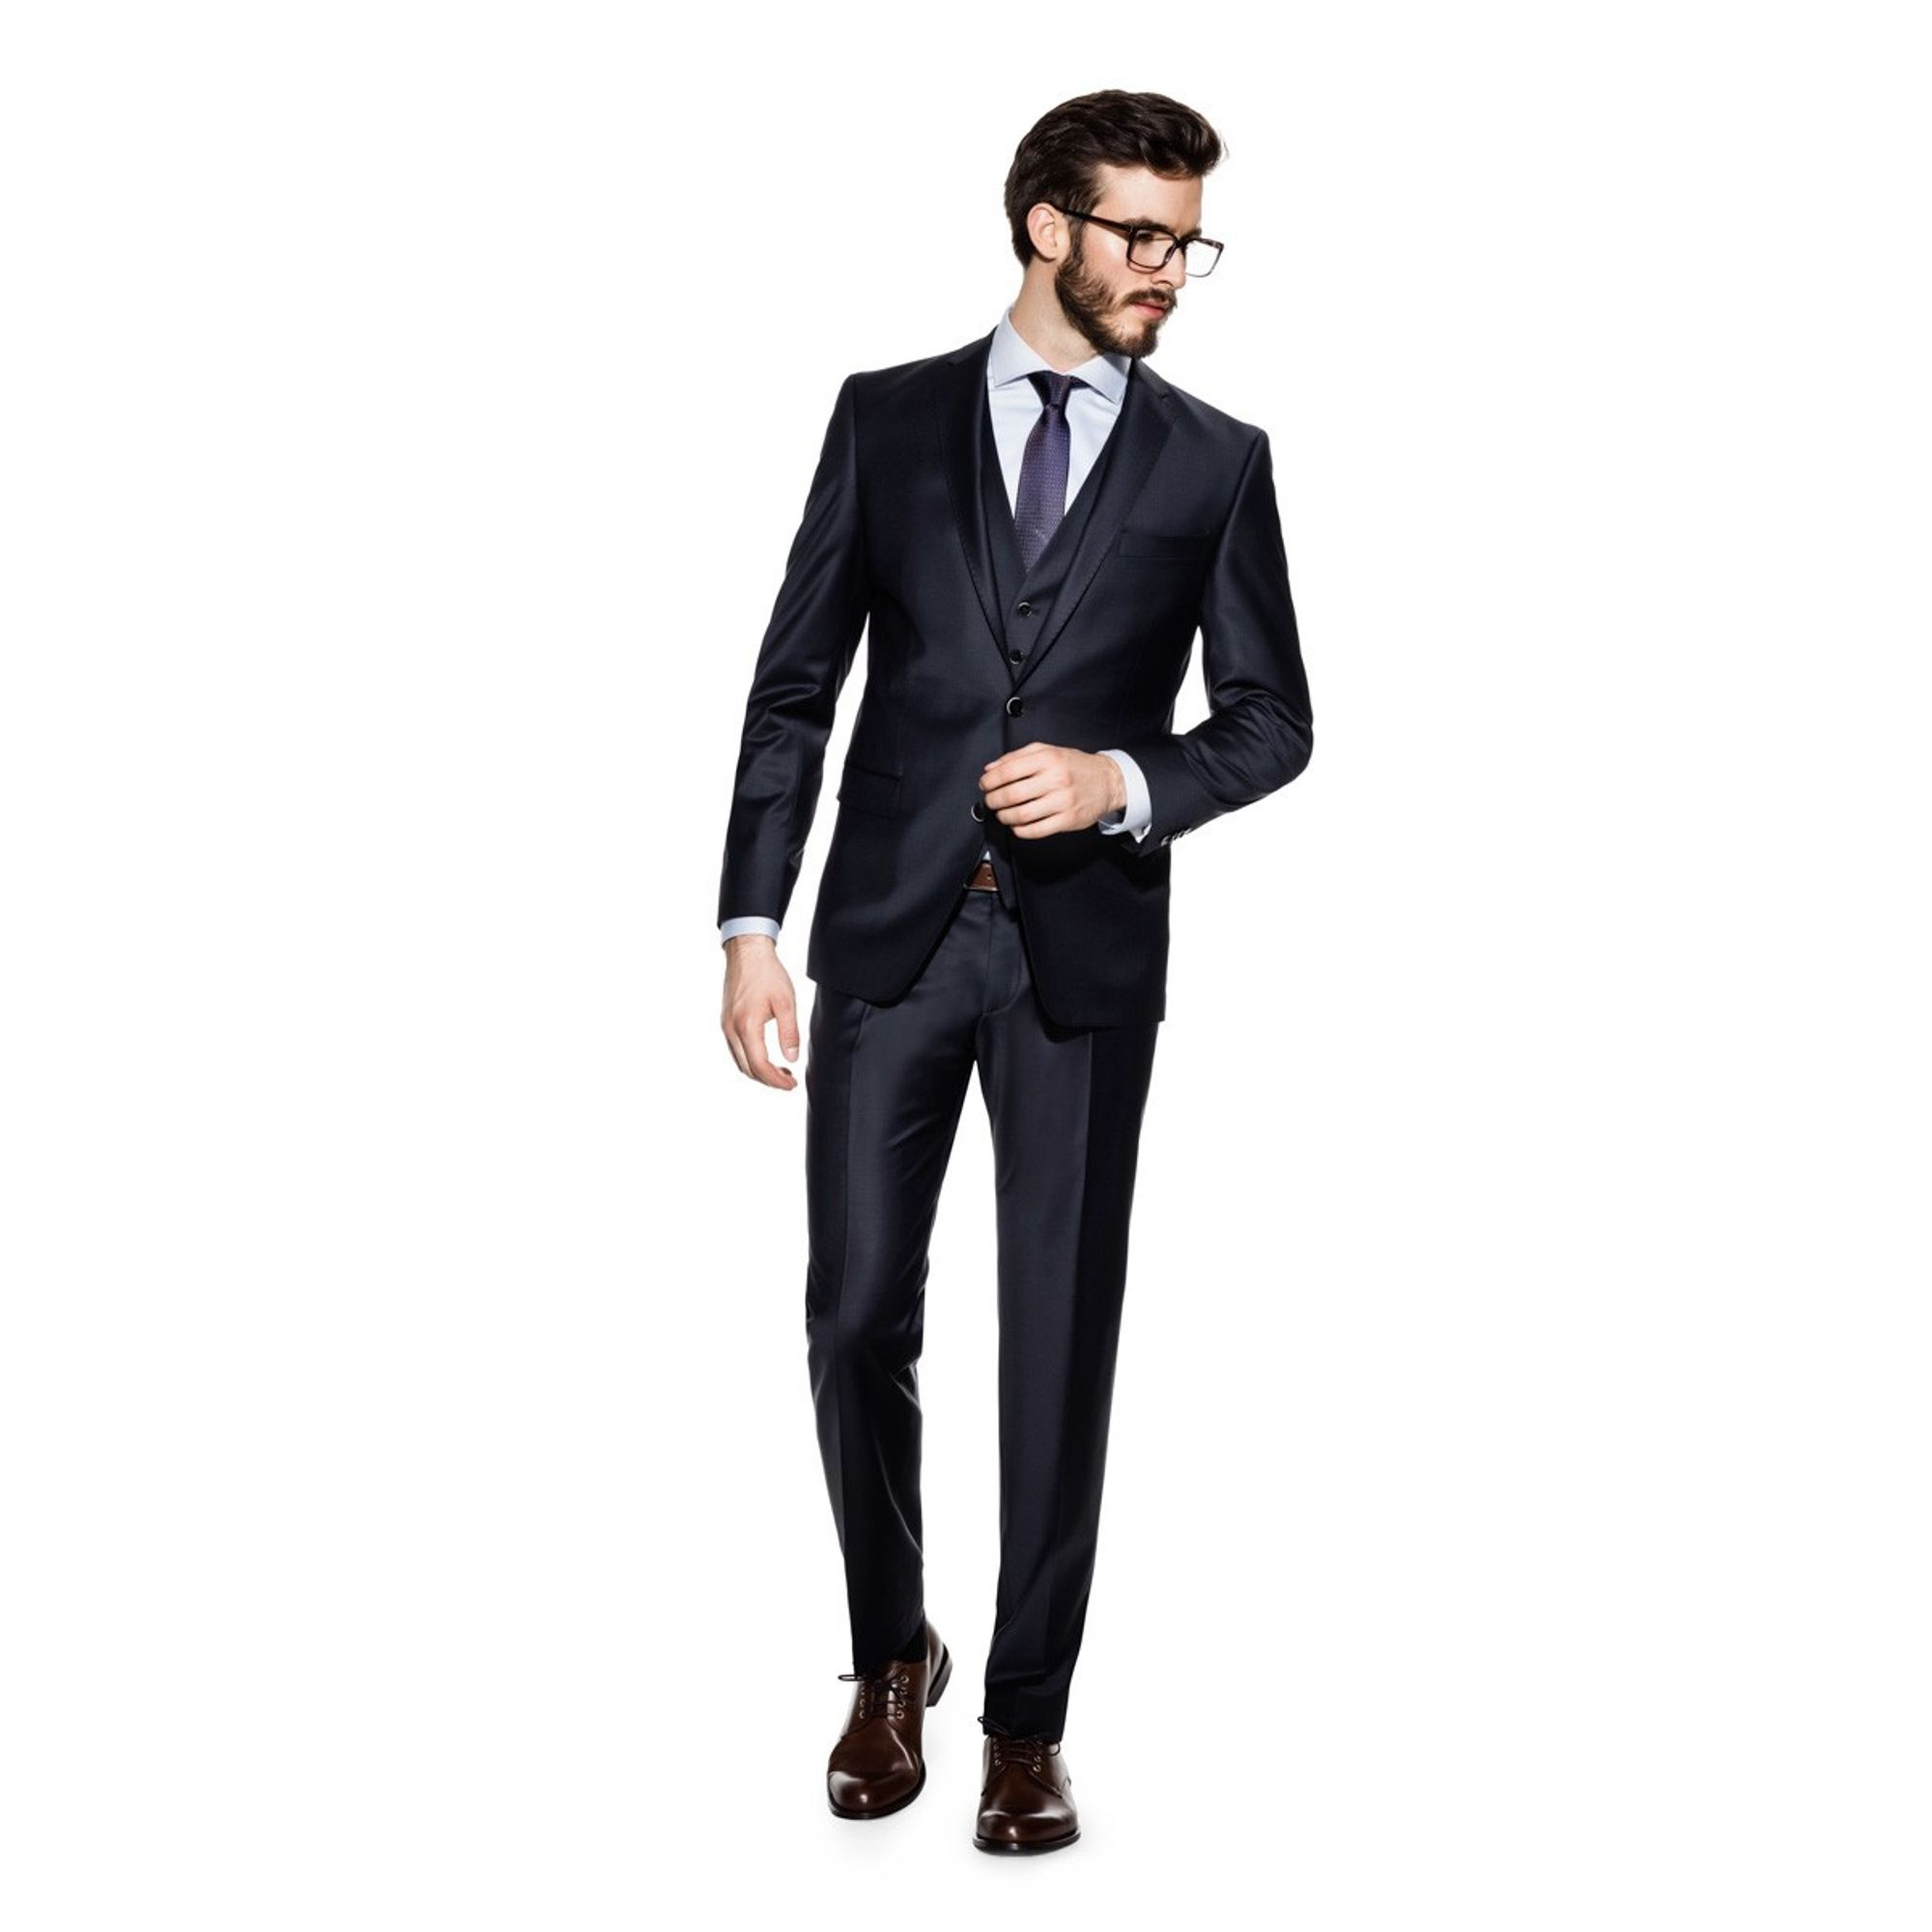 low priced 1a7c8 7f6a2 Benvenuto Black - Slim Fit - Herren Baukasten Anzug in Dunkelblau oder Grau  (20751)